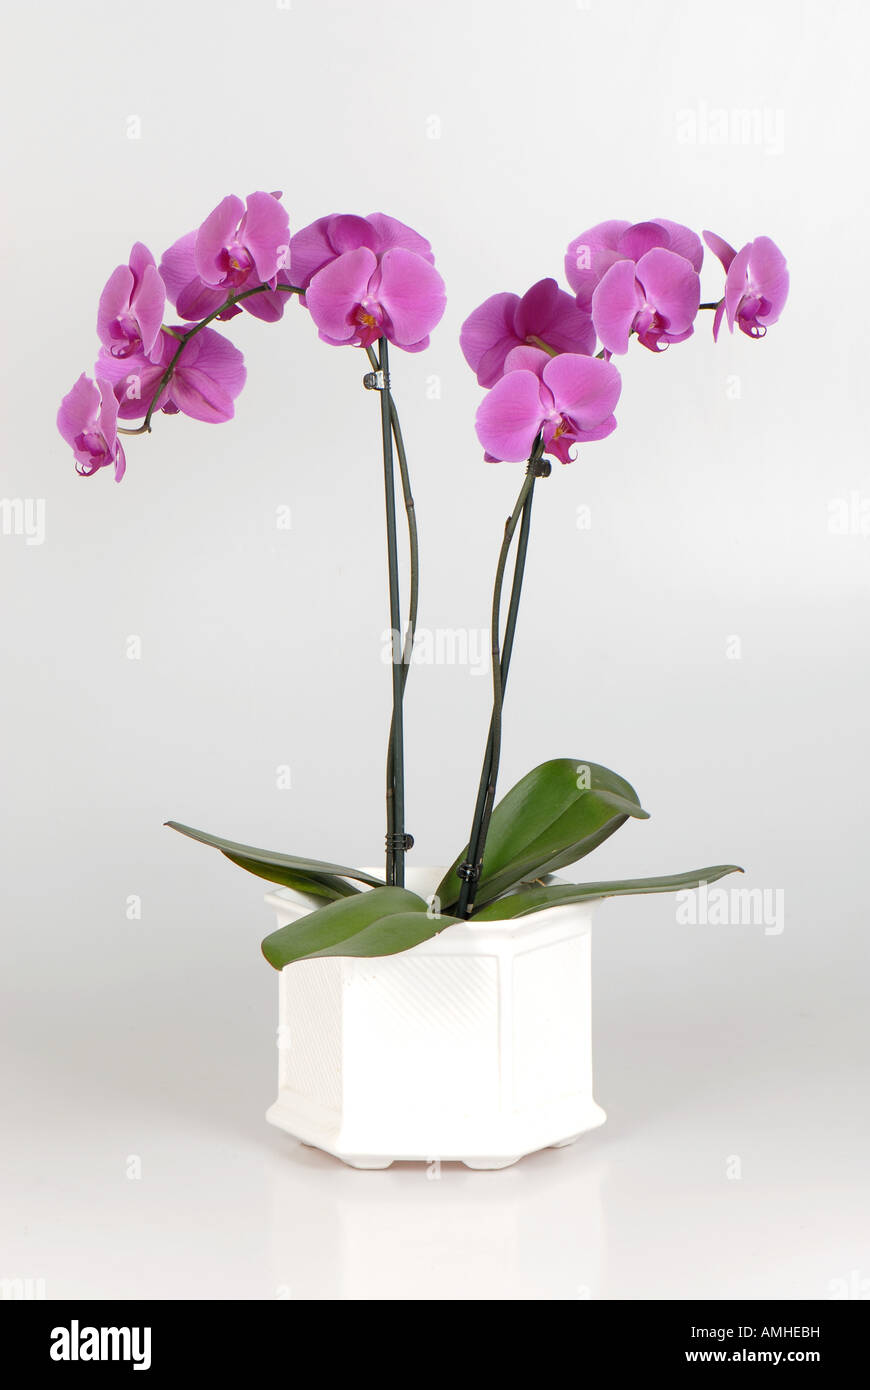 Orchid flowering plant Phalaenopsis of house ornamental pot plant - Stock Image